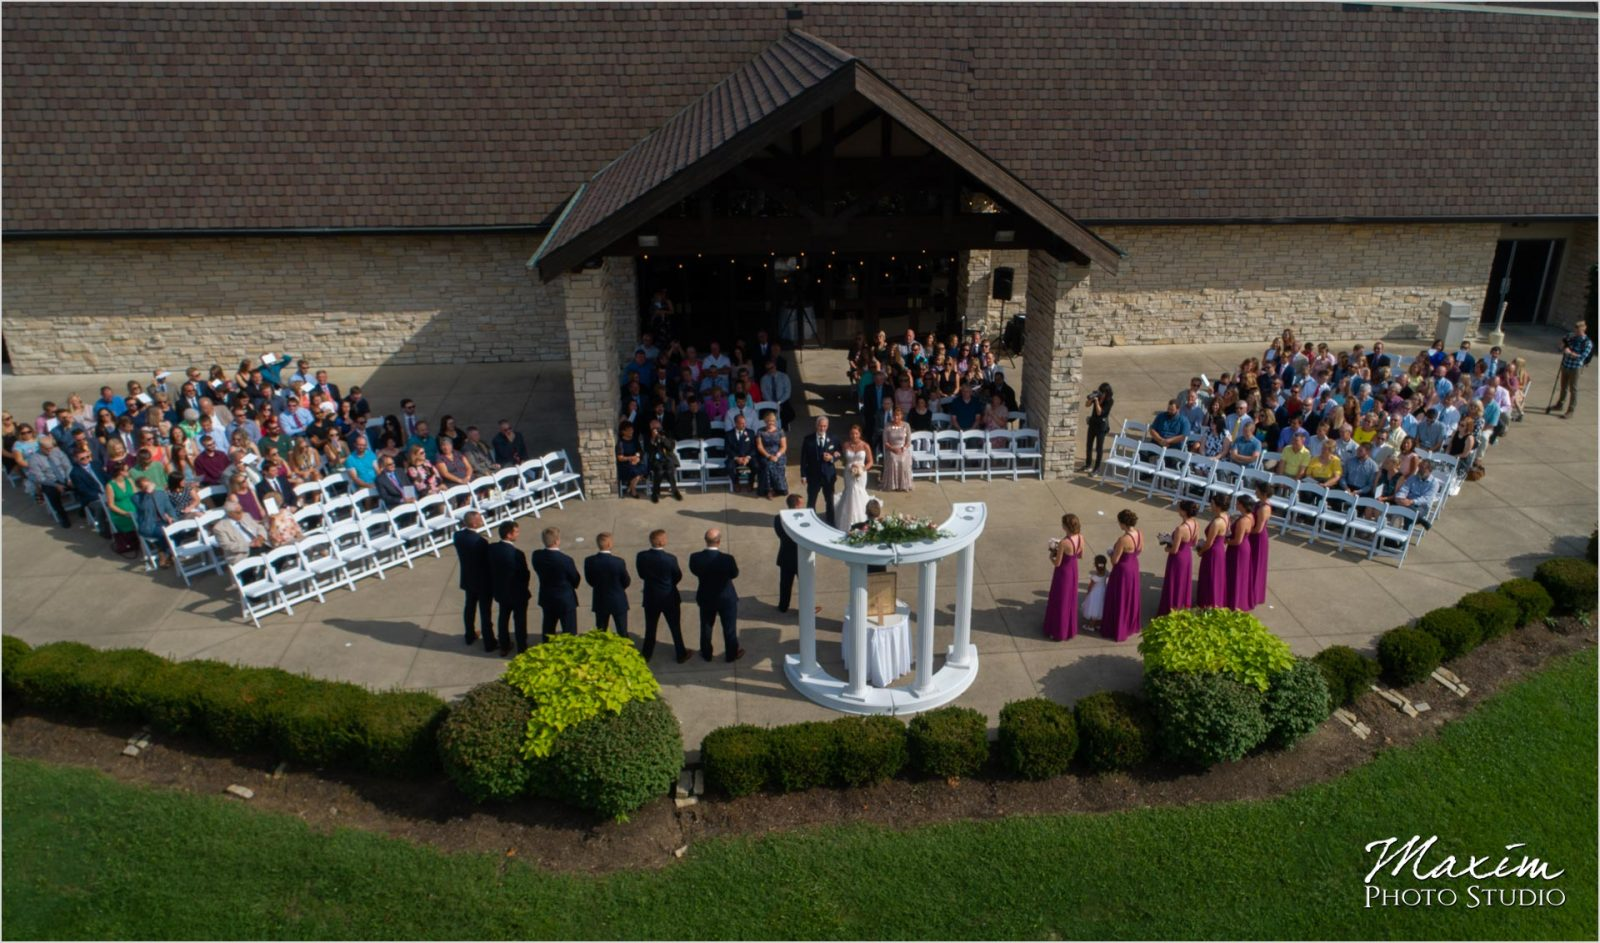 Oasis Conference Center, Cincinnati Wedding Photography, Wedding Ceremony, Drone photography